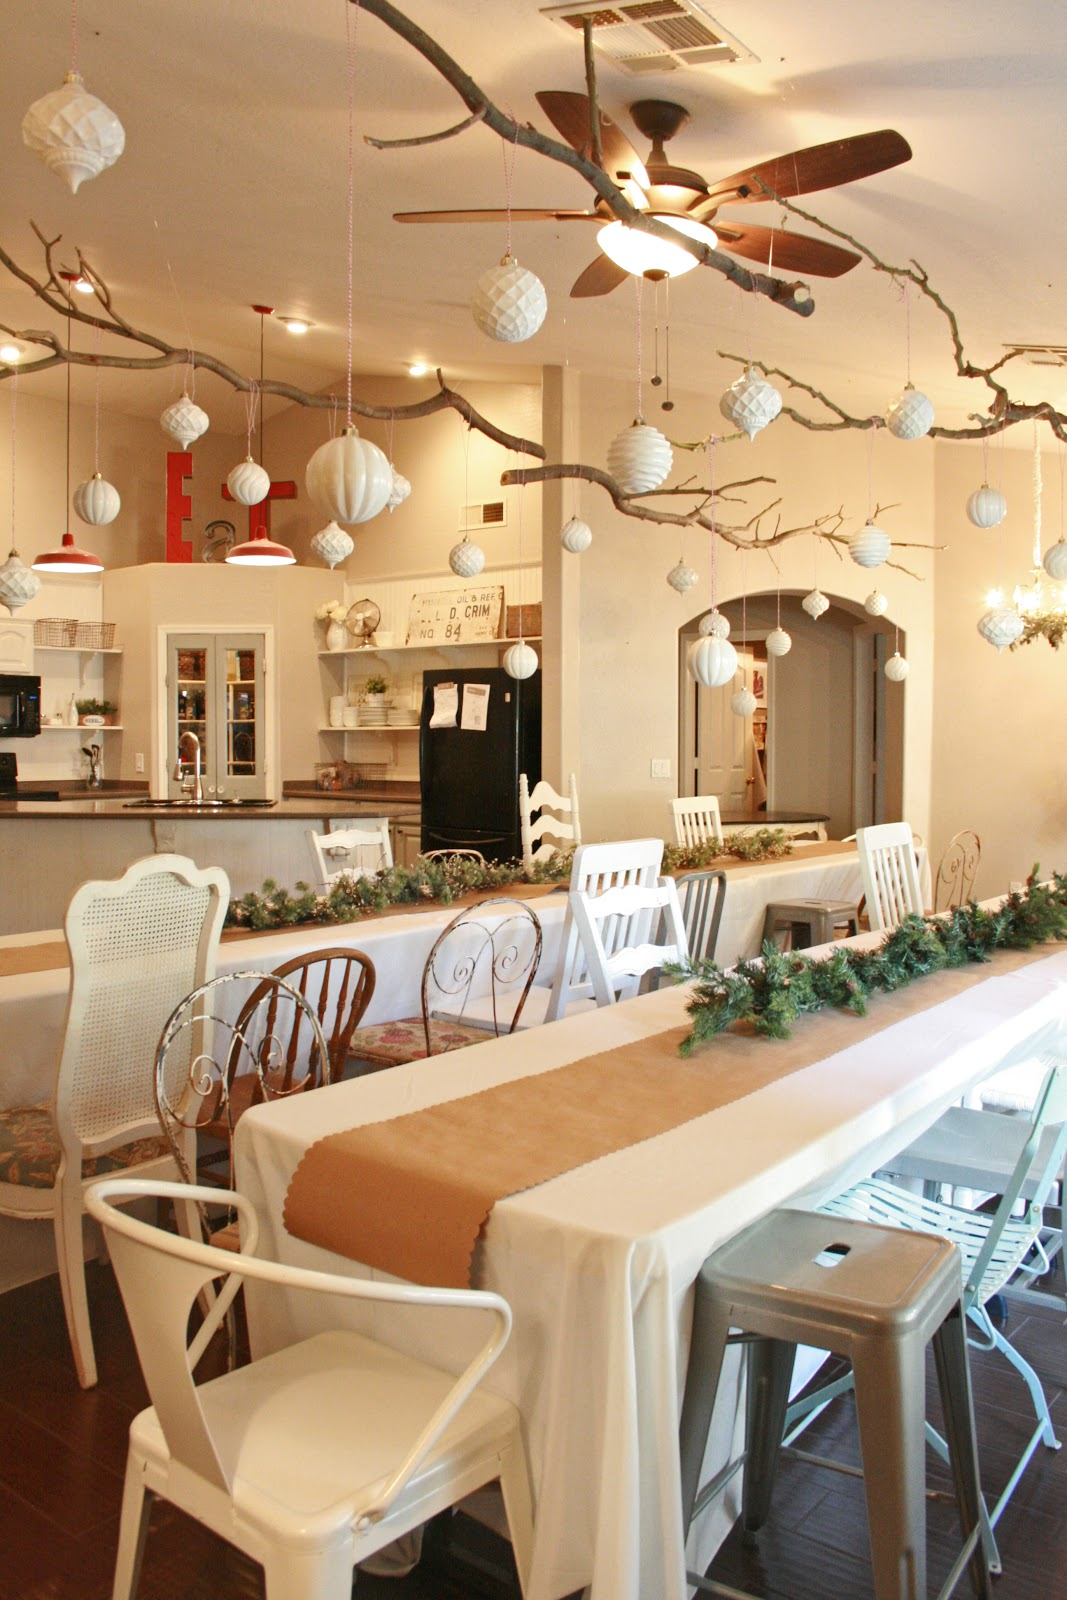 Christmas Party With Ideas For Ceiling Decorations